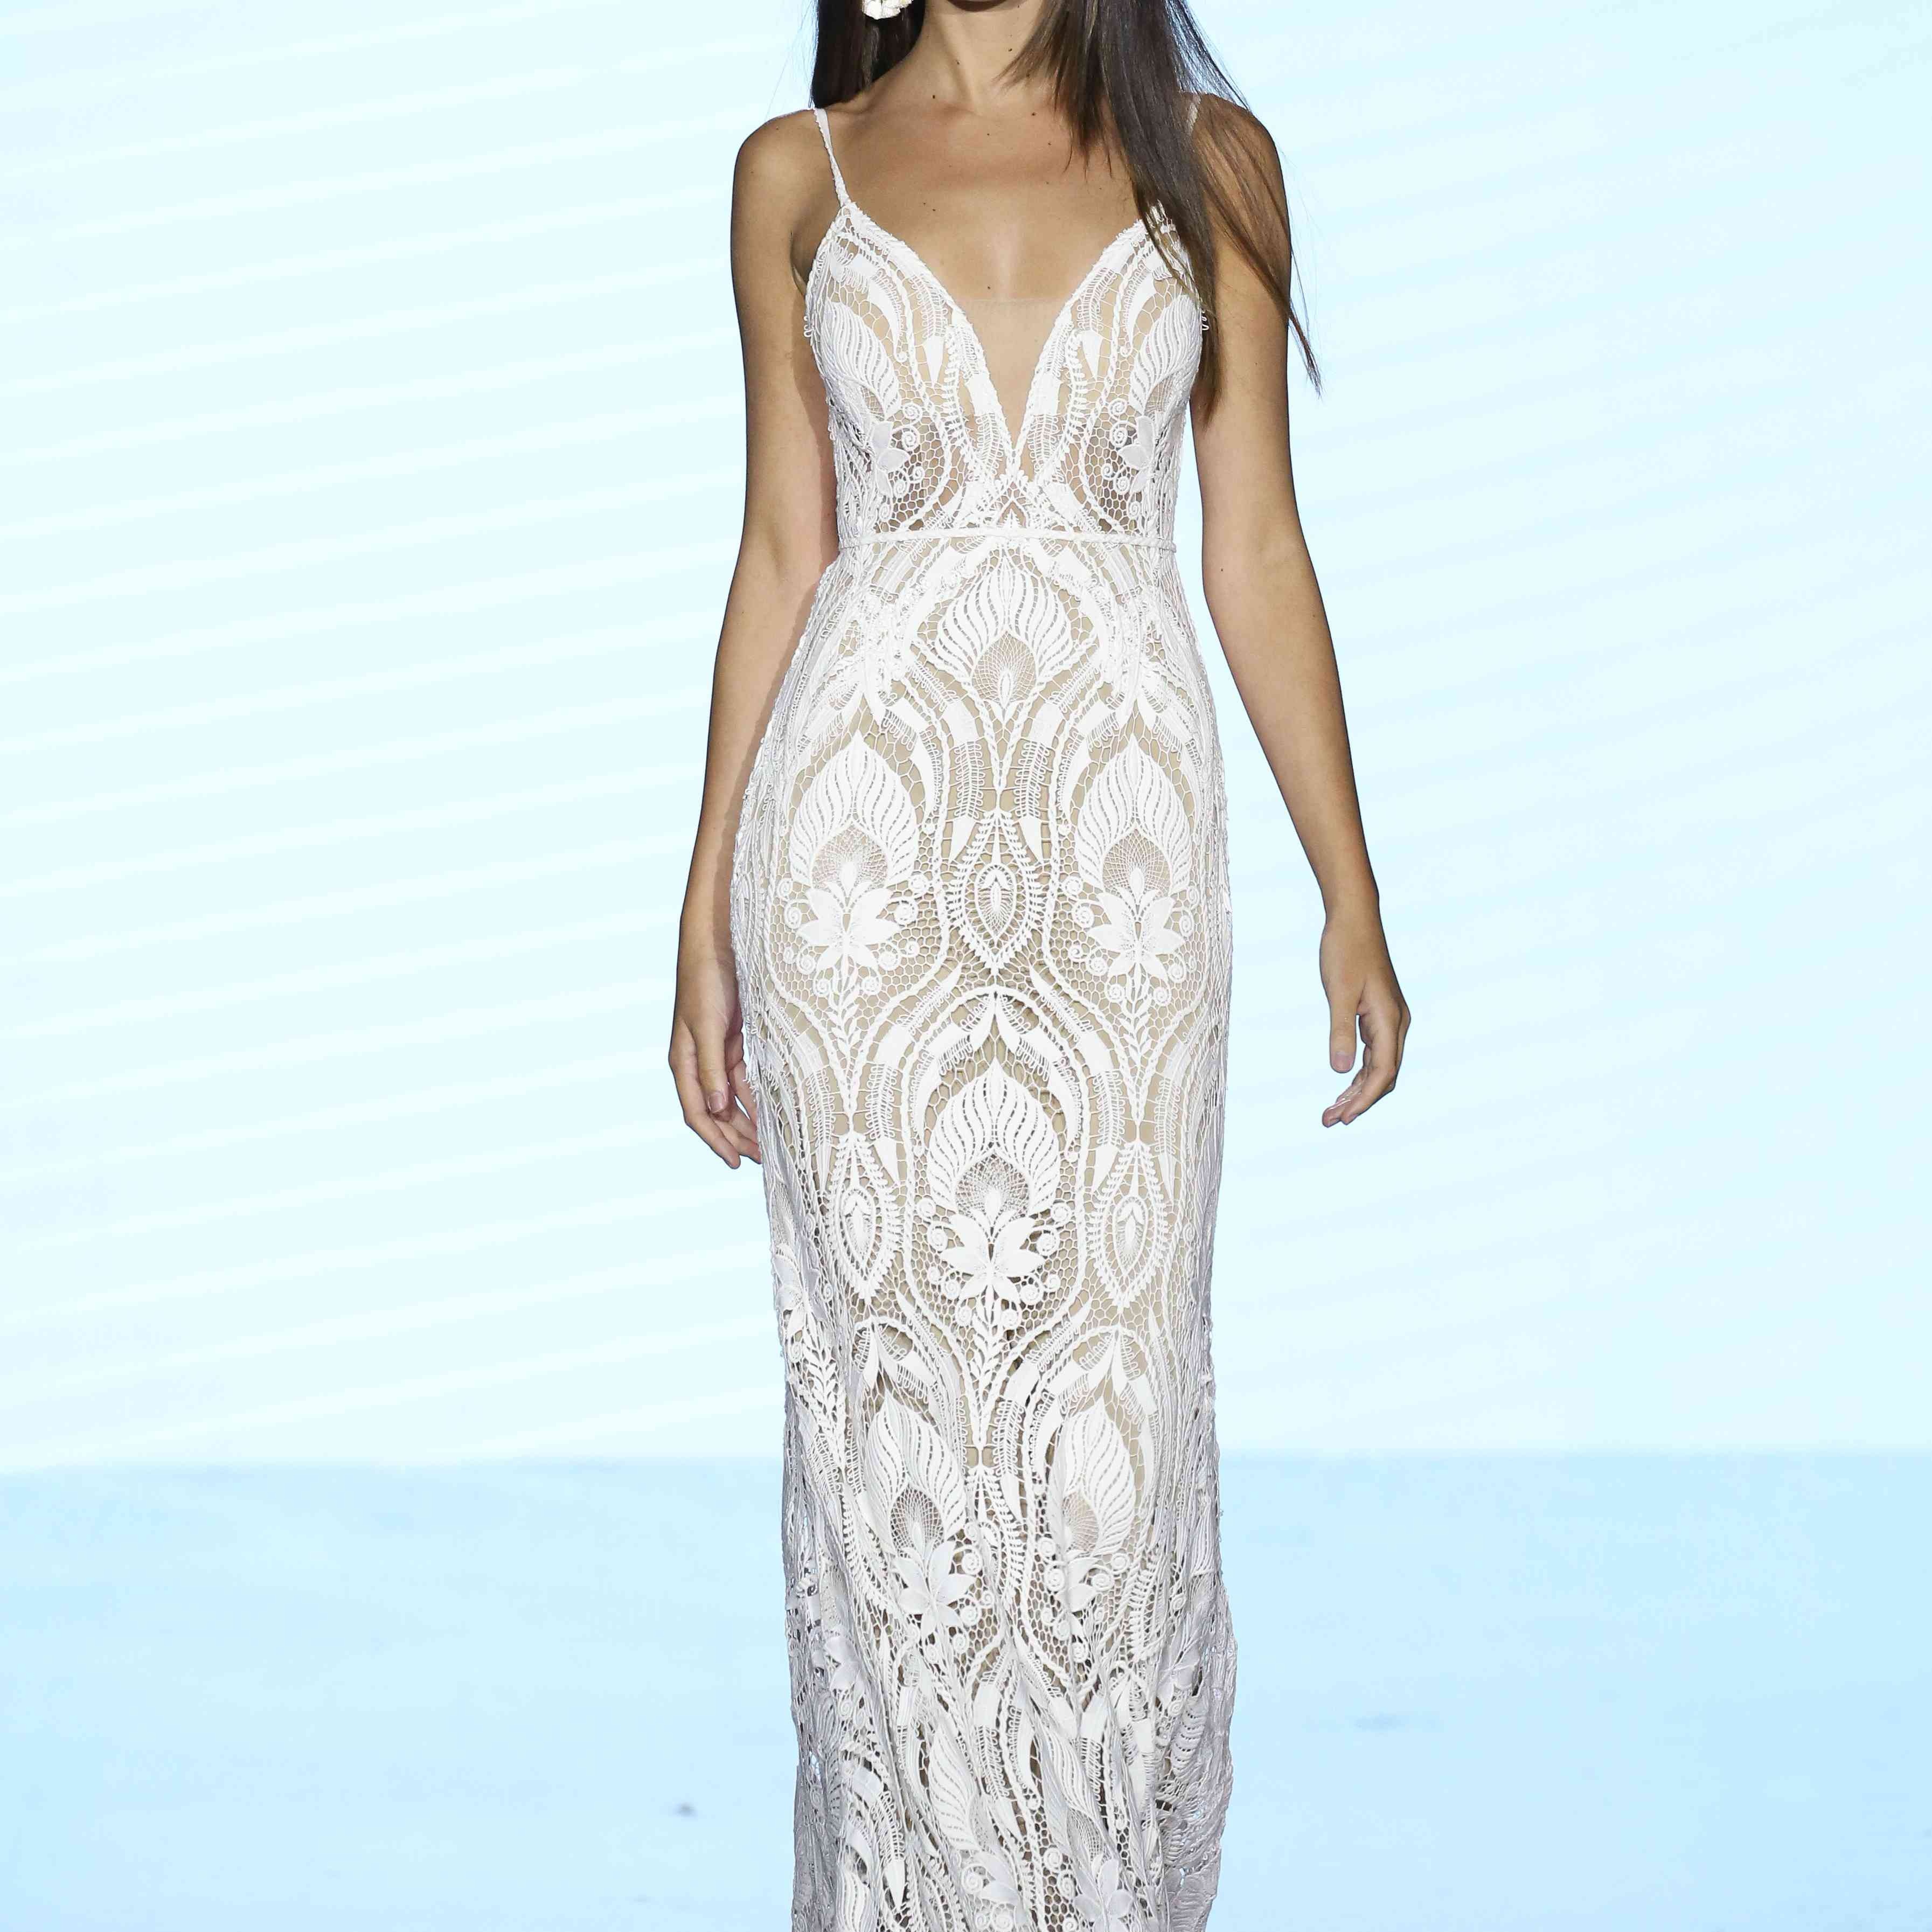 Model in fitted lace sheath gown with a plunging illusion neckline and spaghetti straps